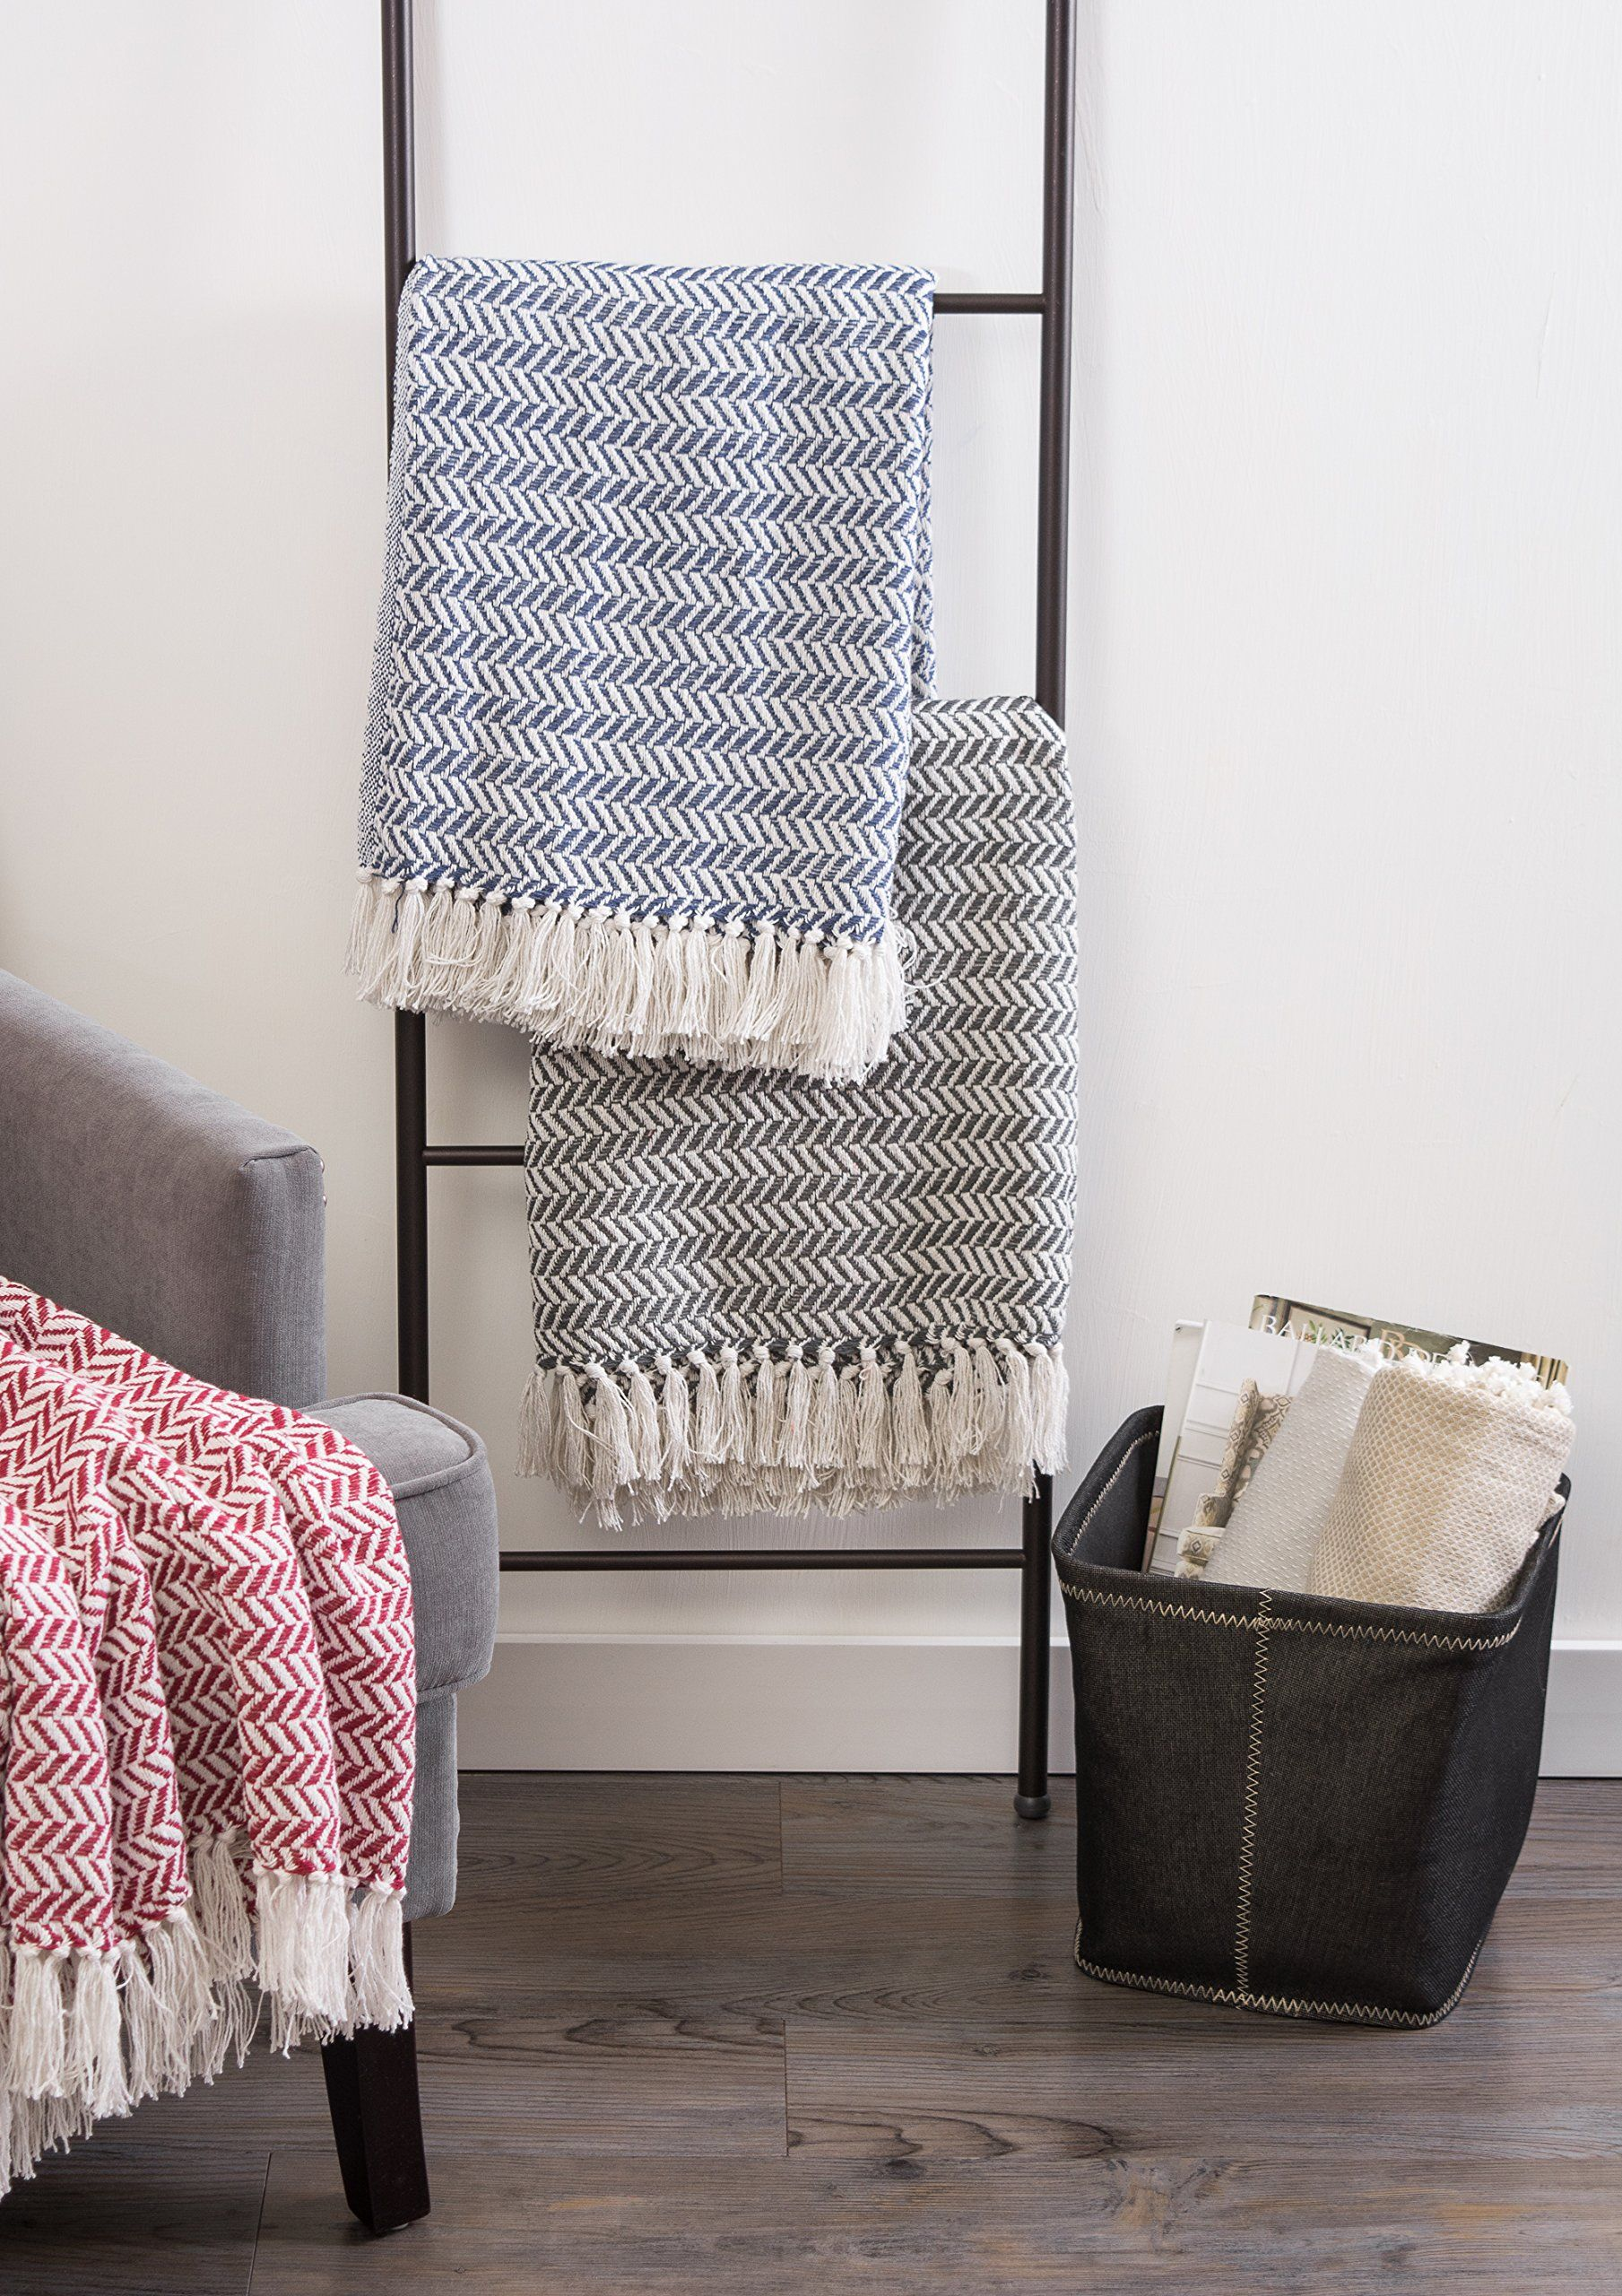 Dii modern farmhouse cotton herringbone blanket throw with fringe for chair couch picnic camping beach and everyday use 50 x 60 herringbone chevron mineral